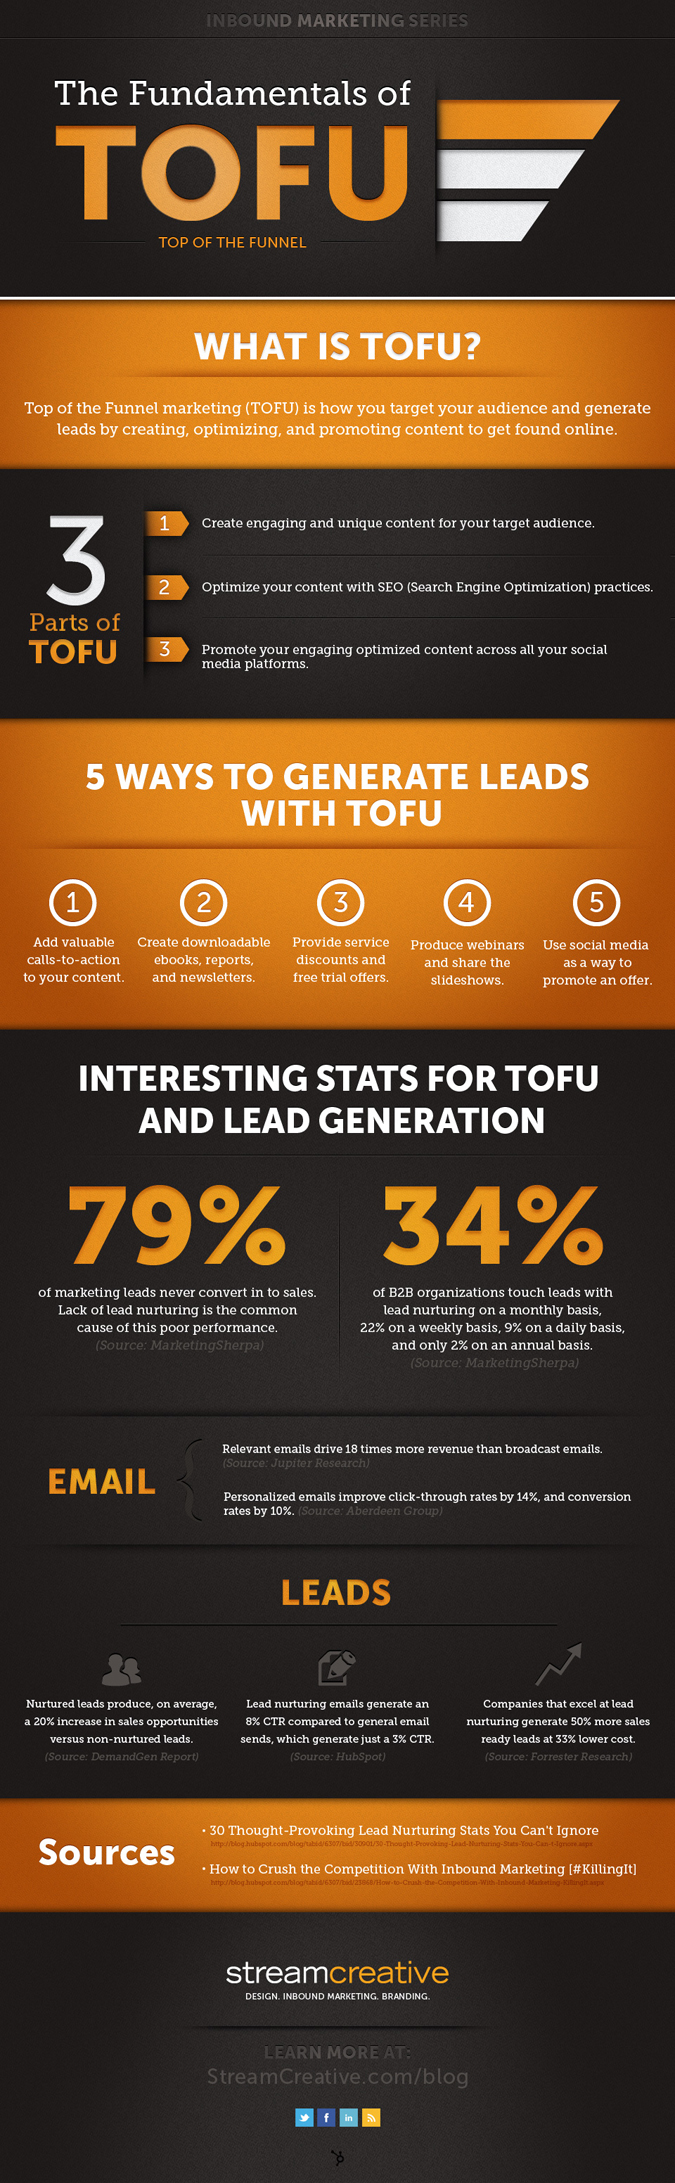 TOFU marketing infographic 600